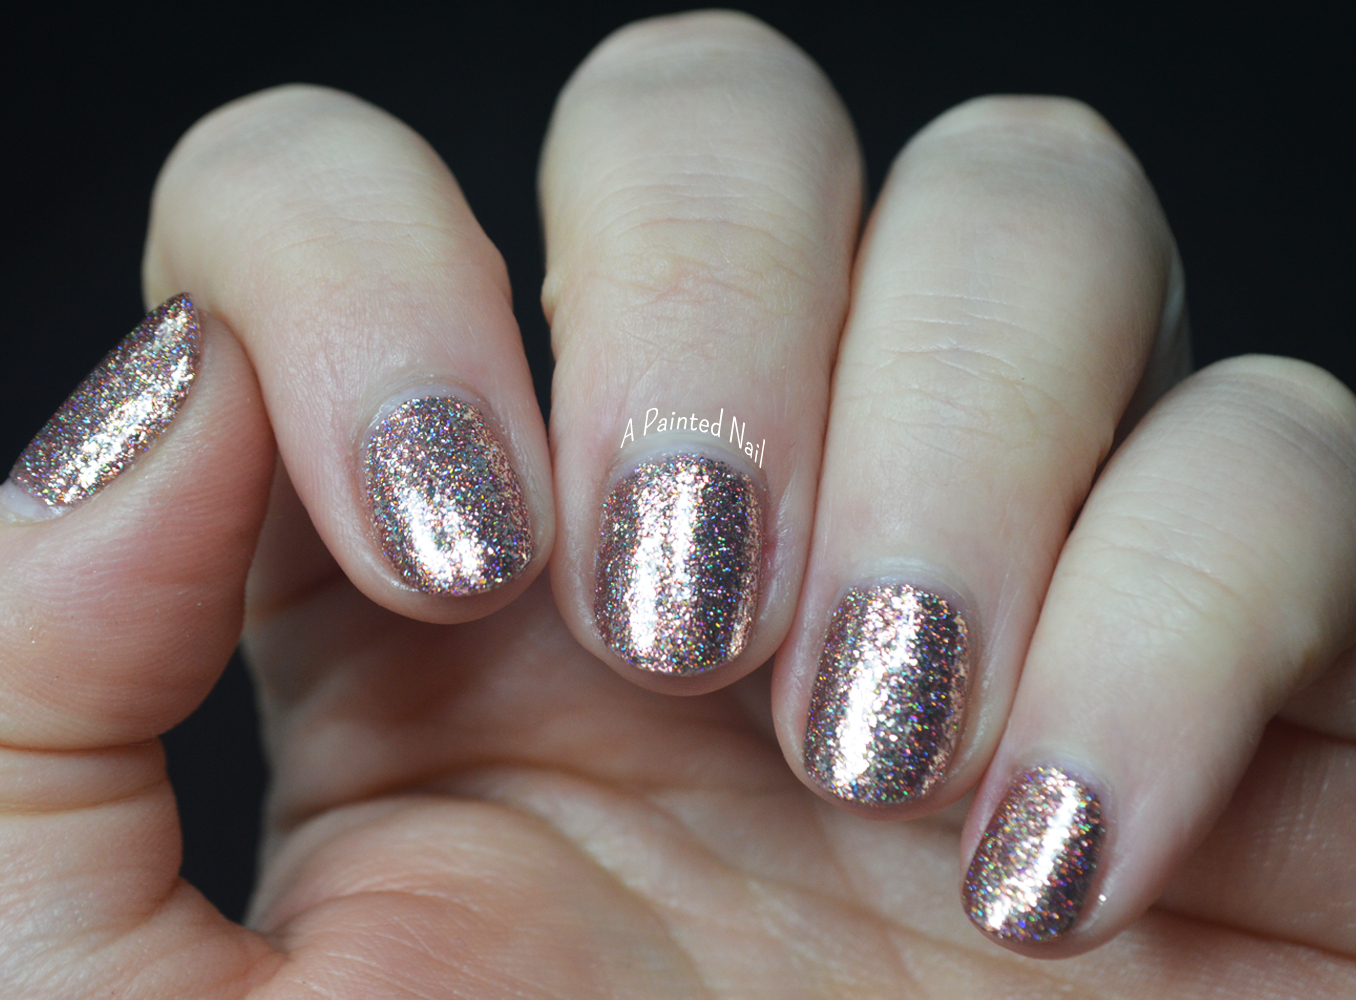 Ilnp Holographic Nail Polish Uk - Absolute cycle